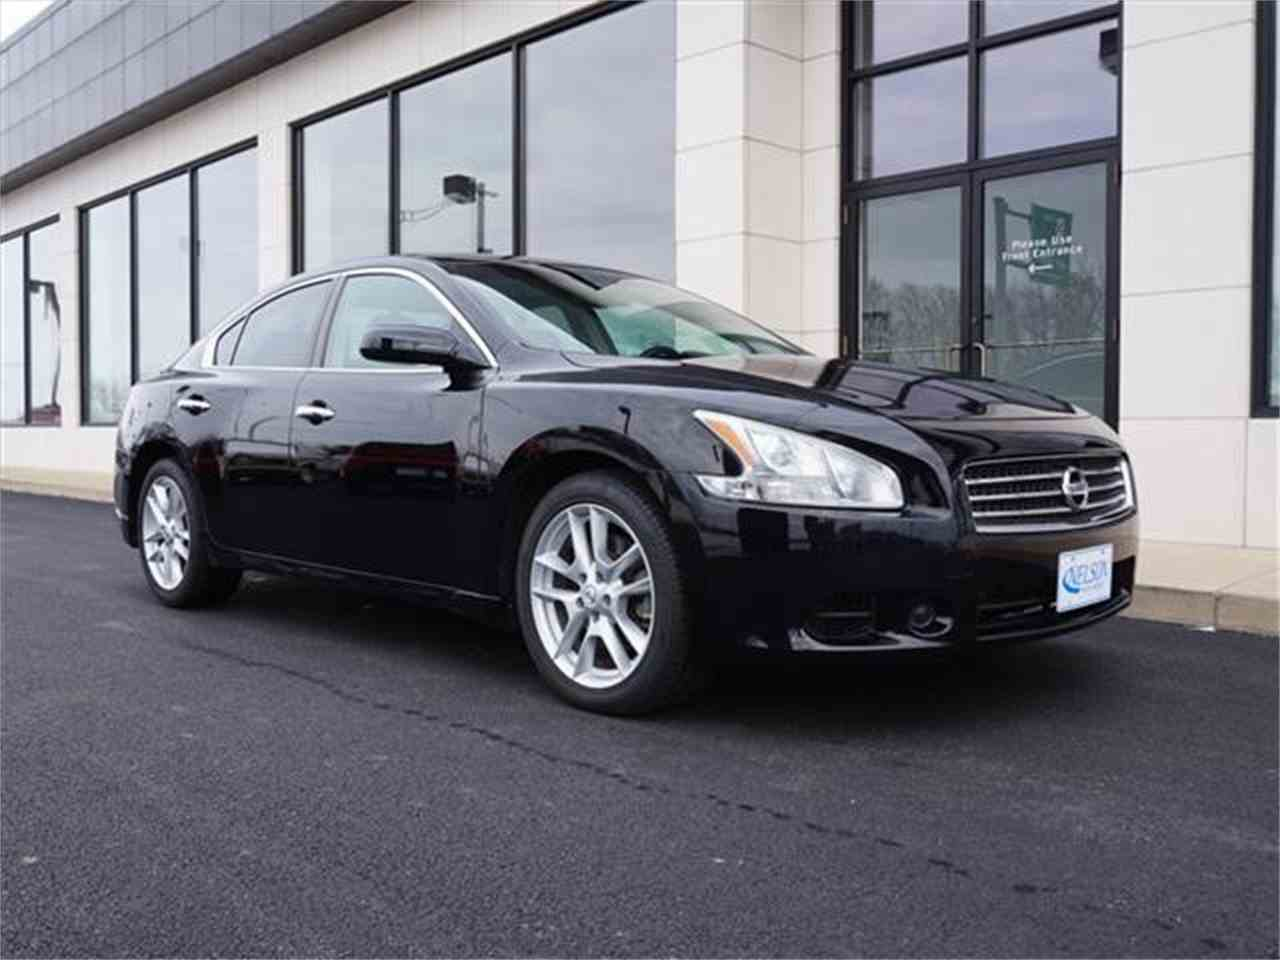 Large Picture of 2010 Maxima located in Ohio - $9,999.00 Offered by Nelson Automotive, Ltd. - KHAD